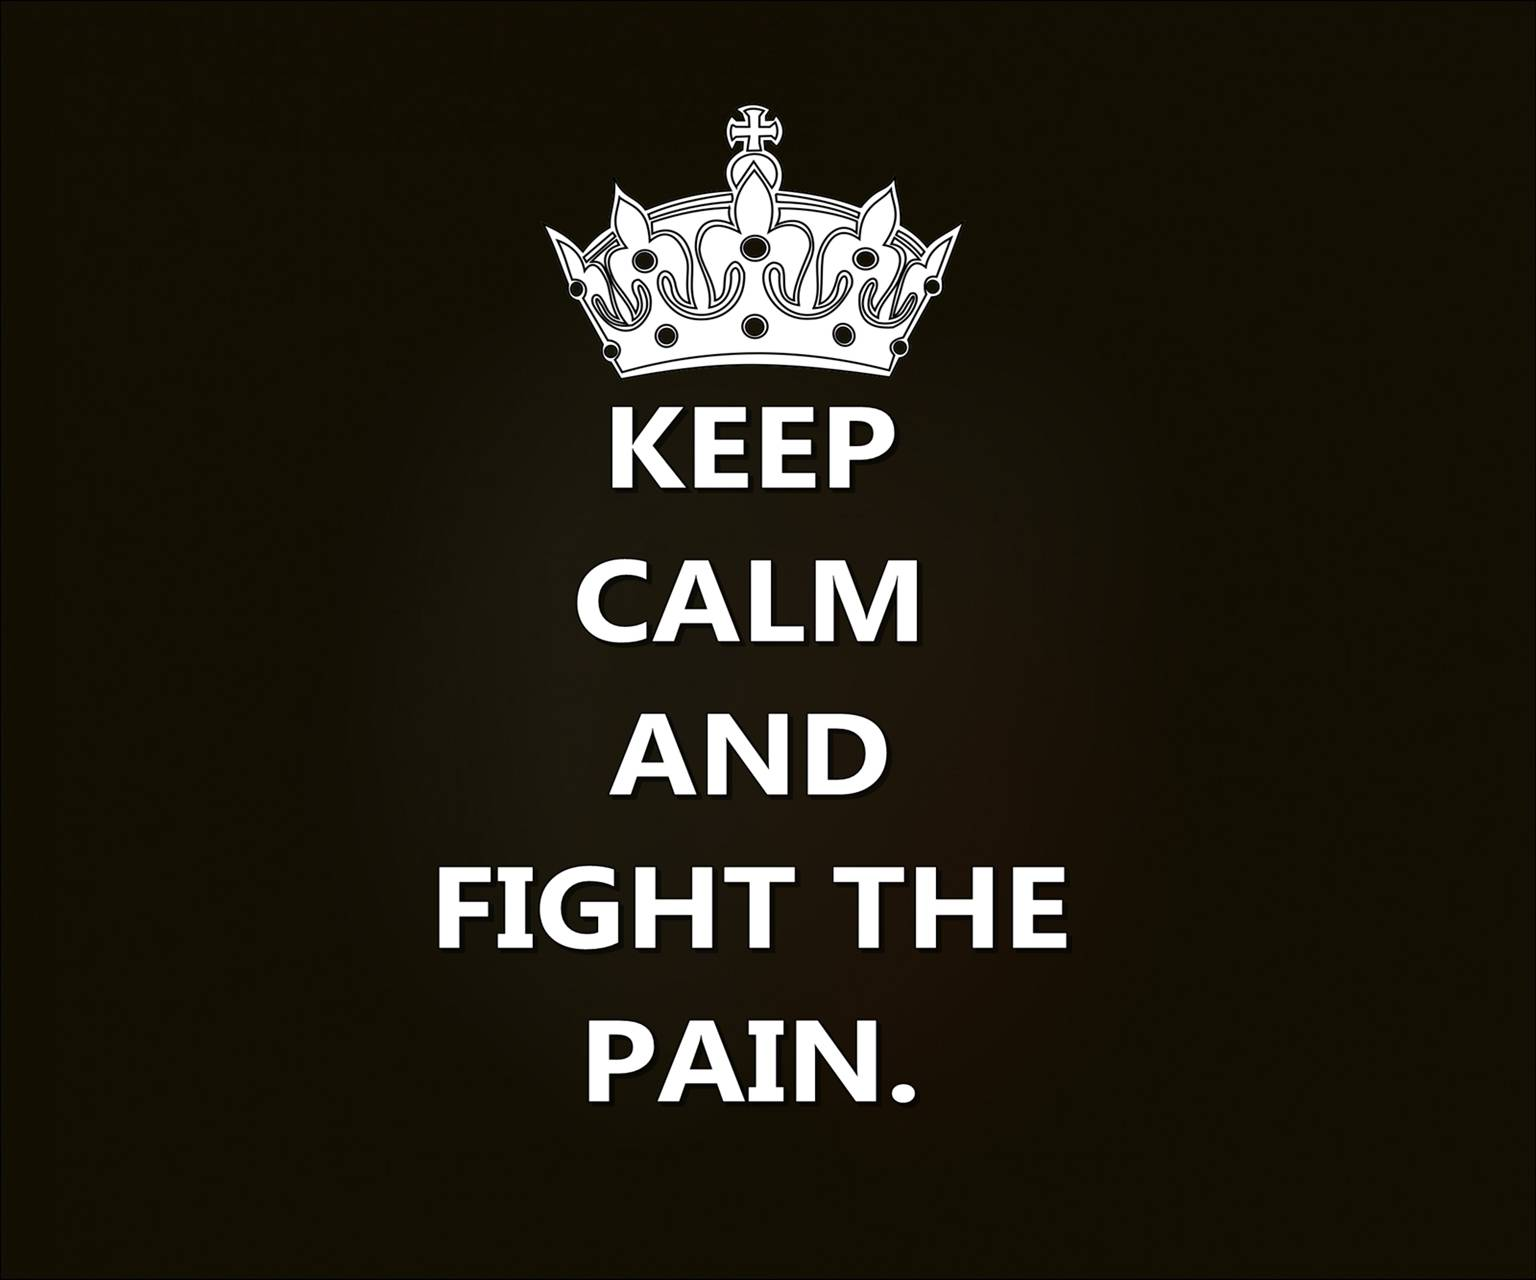 fight the pain